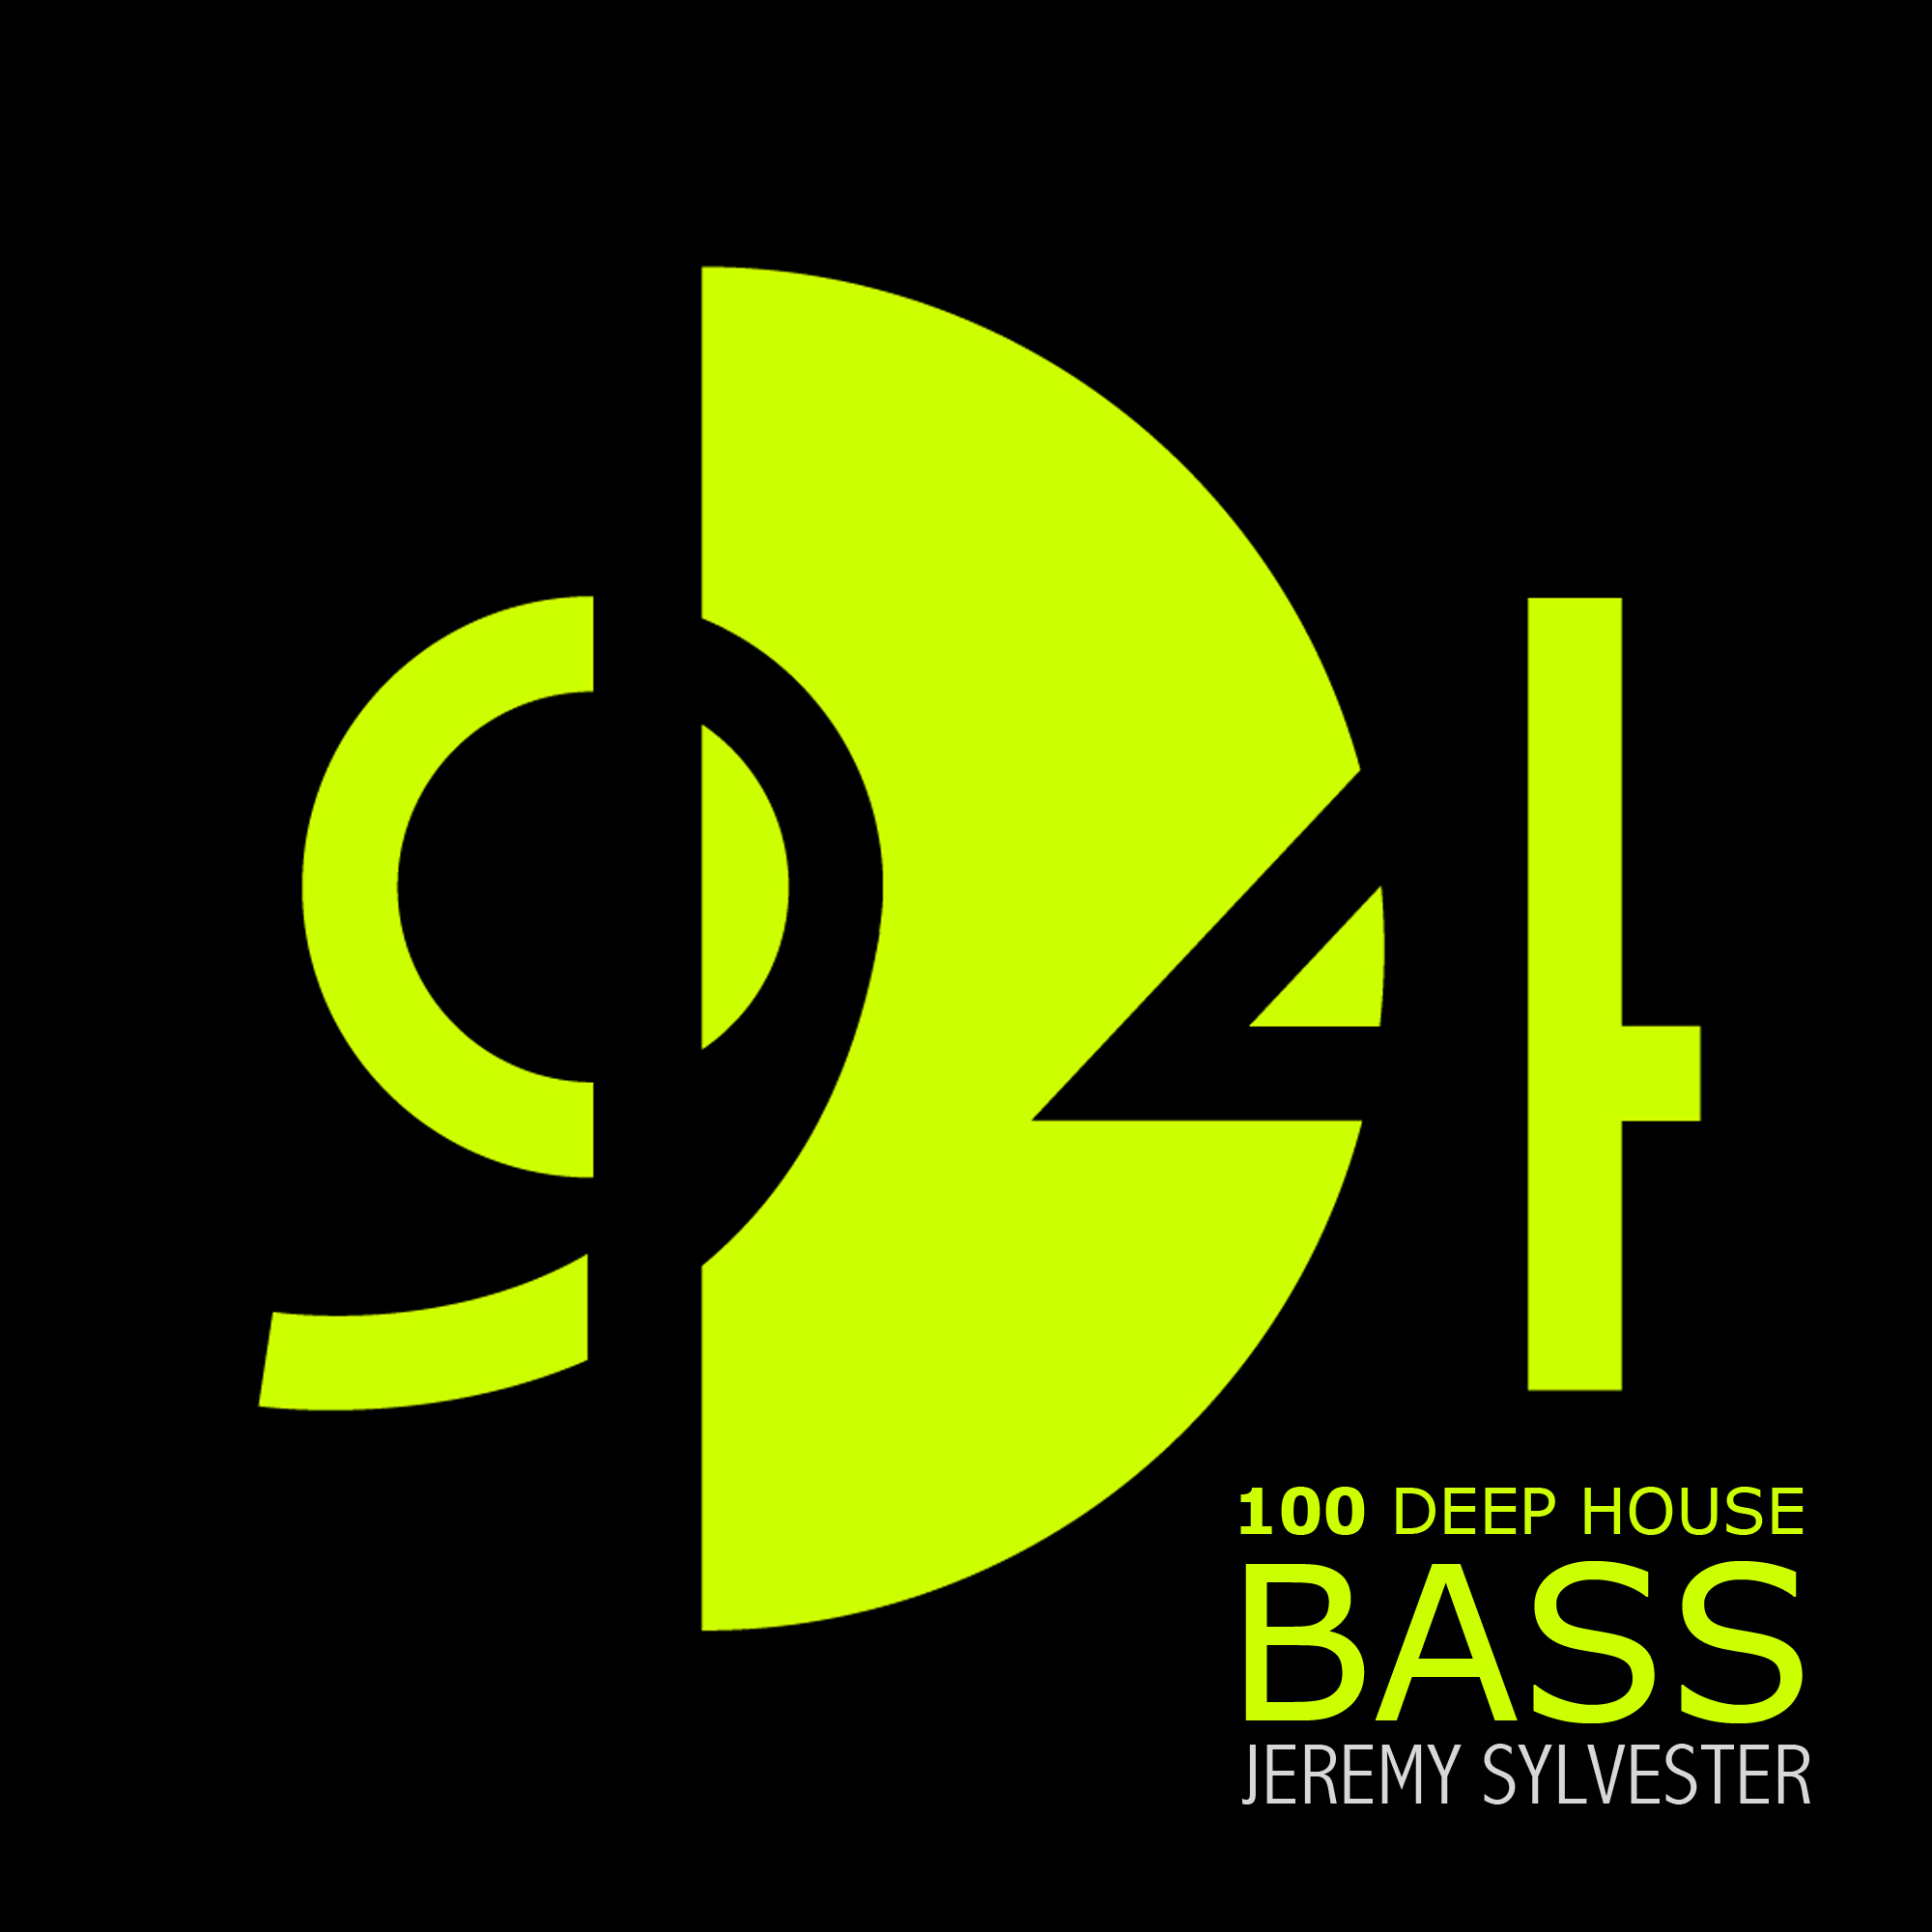 9D4_100_DEEP_HOUSE_BASS_2000X2000_